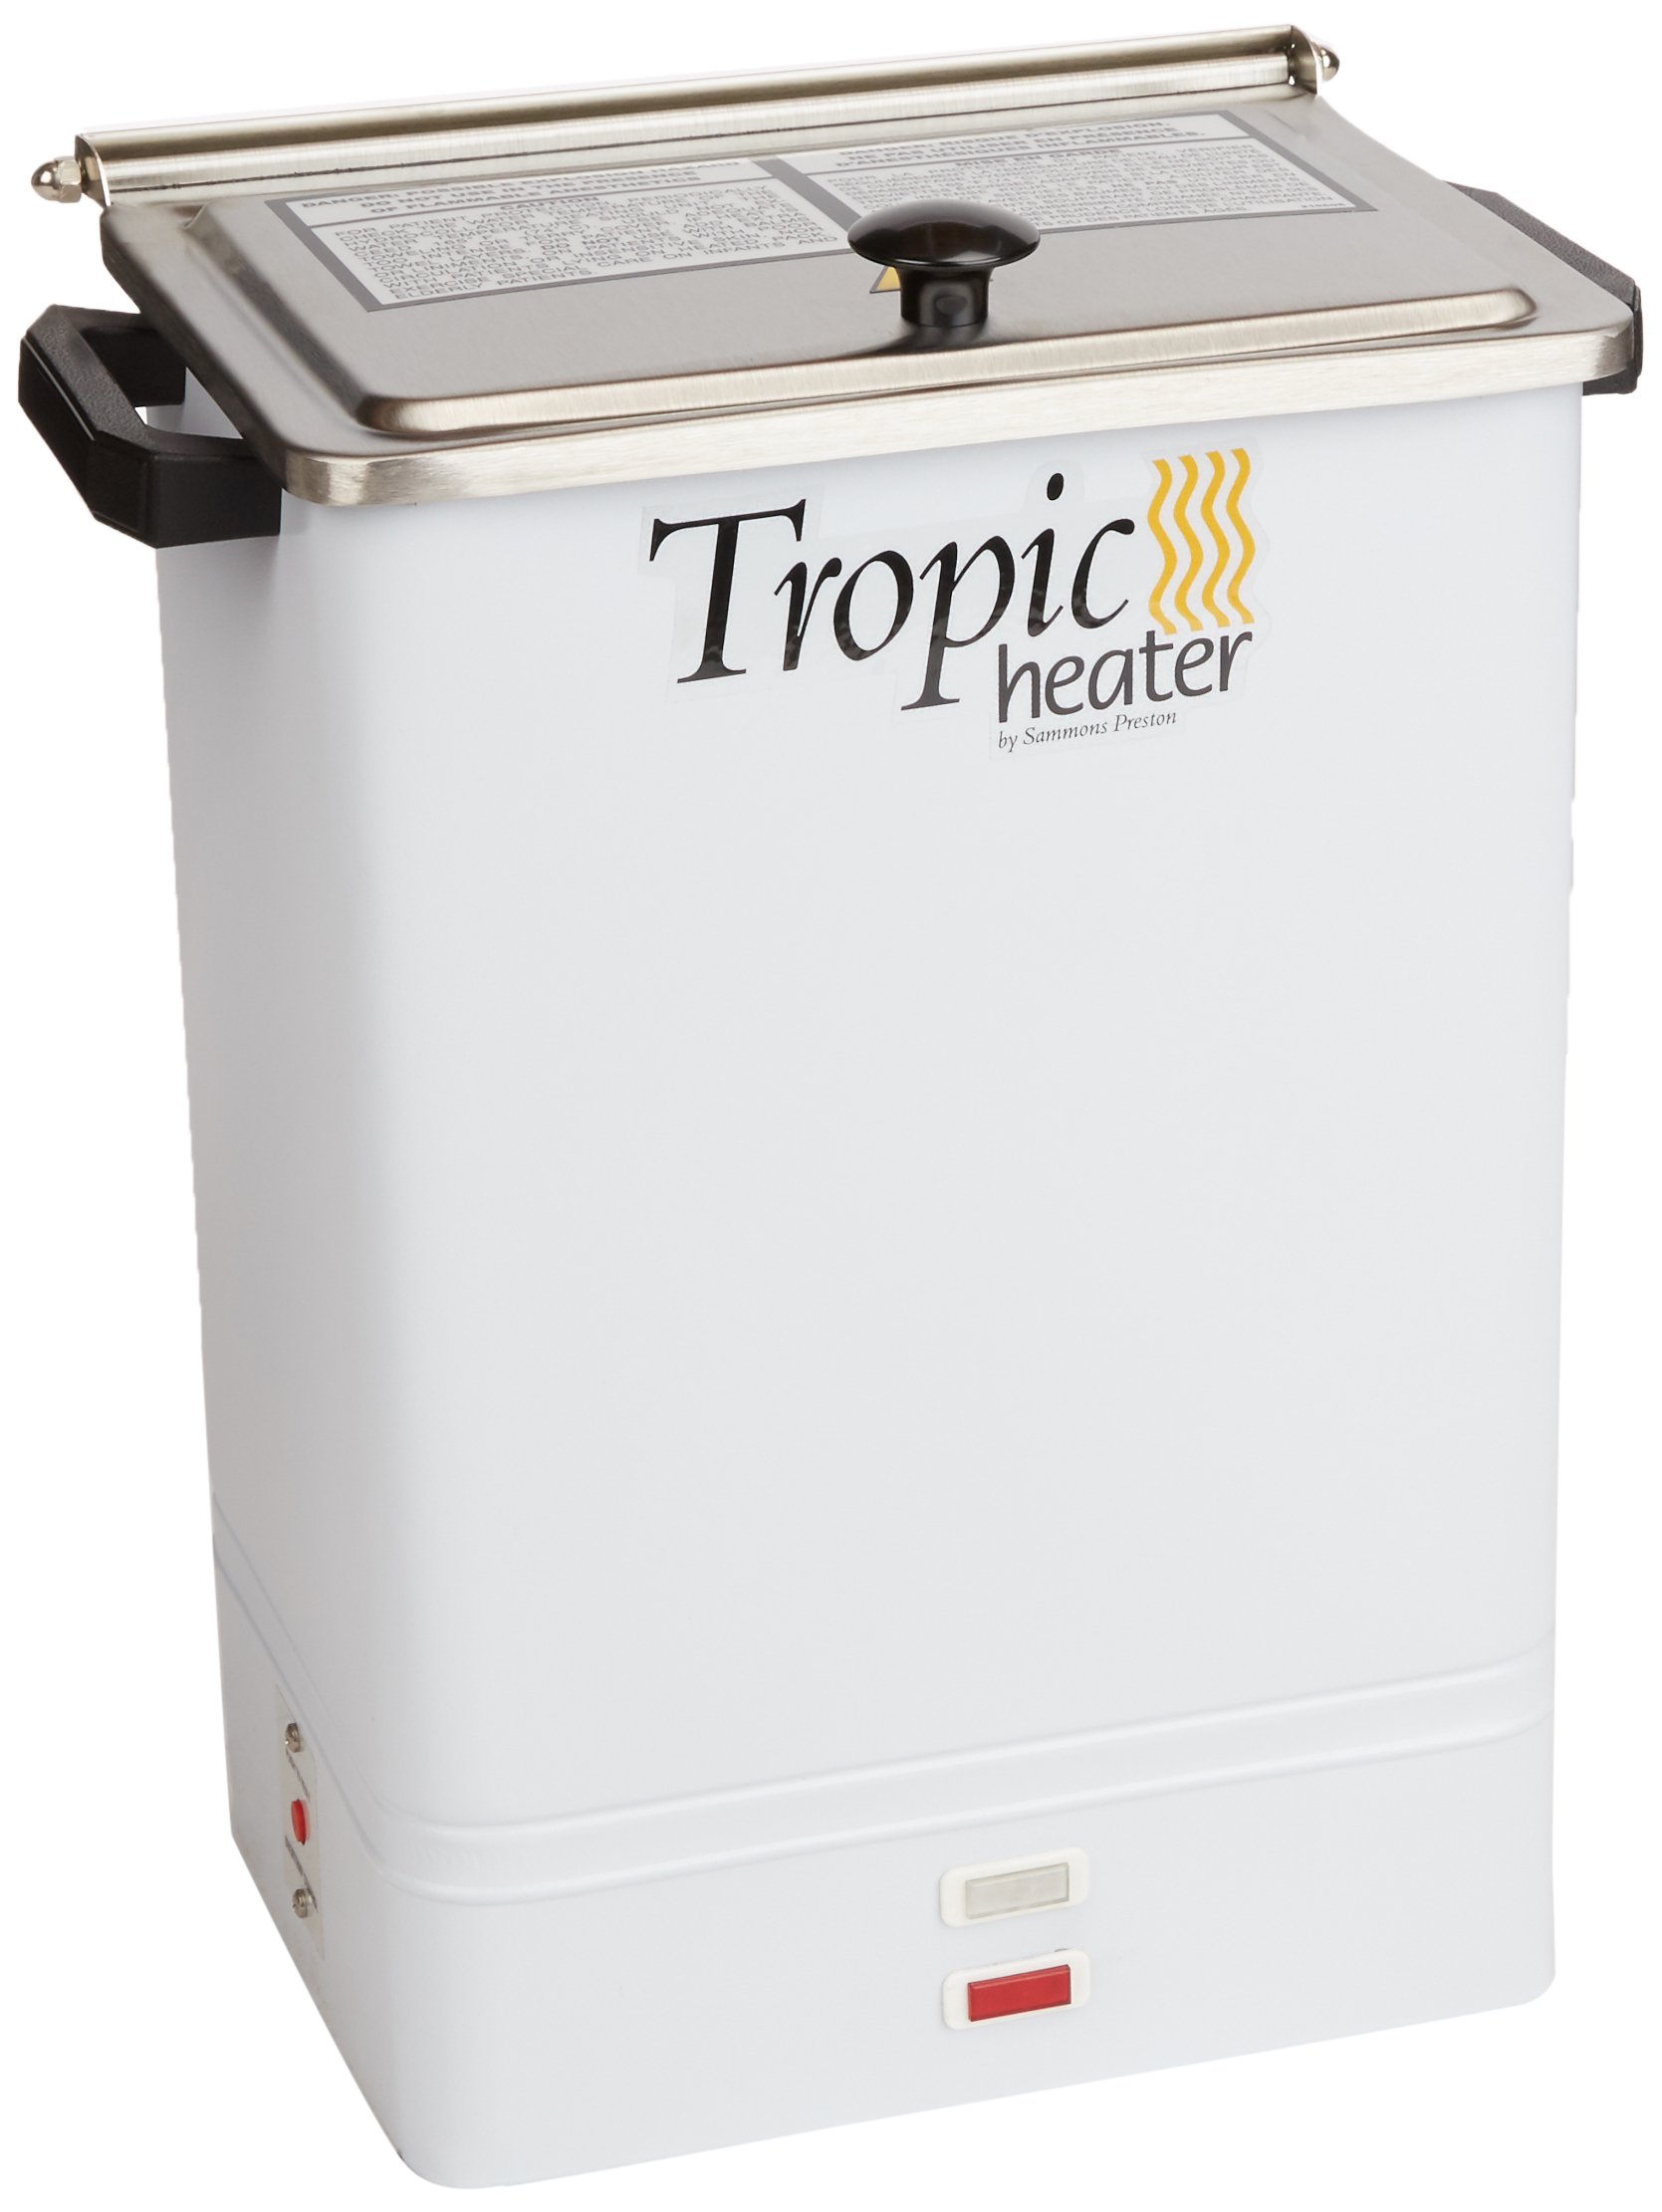 Sammons Preston Tropic Heater, Stationary Version, Heat System with 4 Tropic Pacs, Stainless Steel Collator Heating Unit Uses Hot Water to Warm Packs, Durable Racks Fit All Shapes of Moist Hot Pack